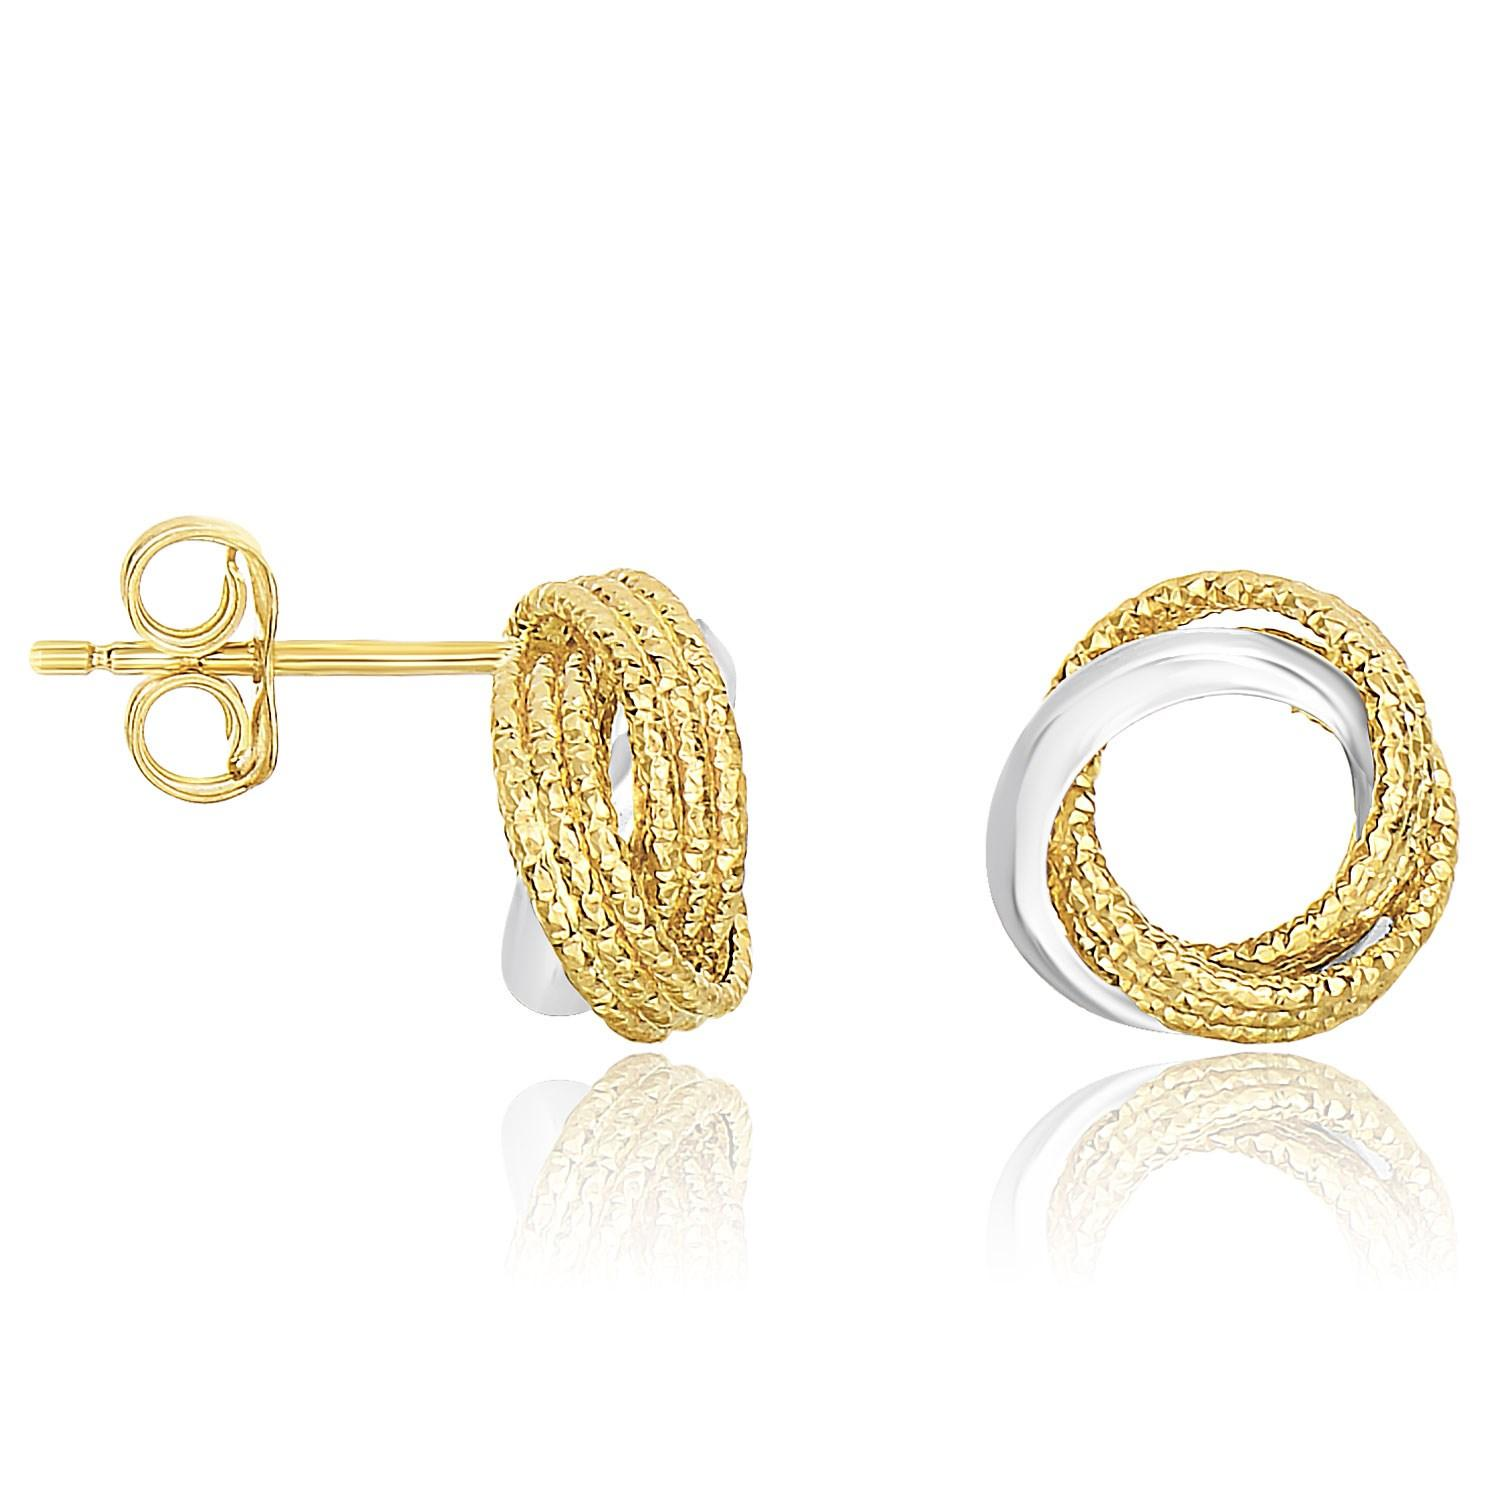 14k Two-Tone Gold Multi-Textured Open Circle Style Entwined Earrings